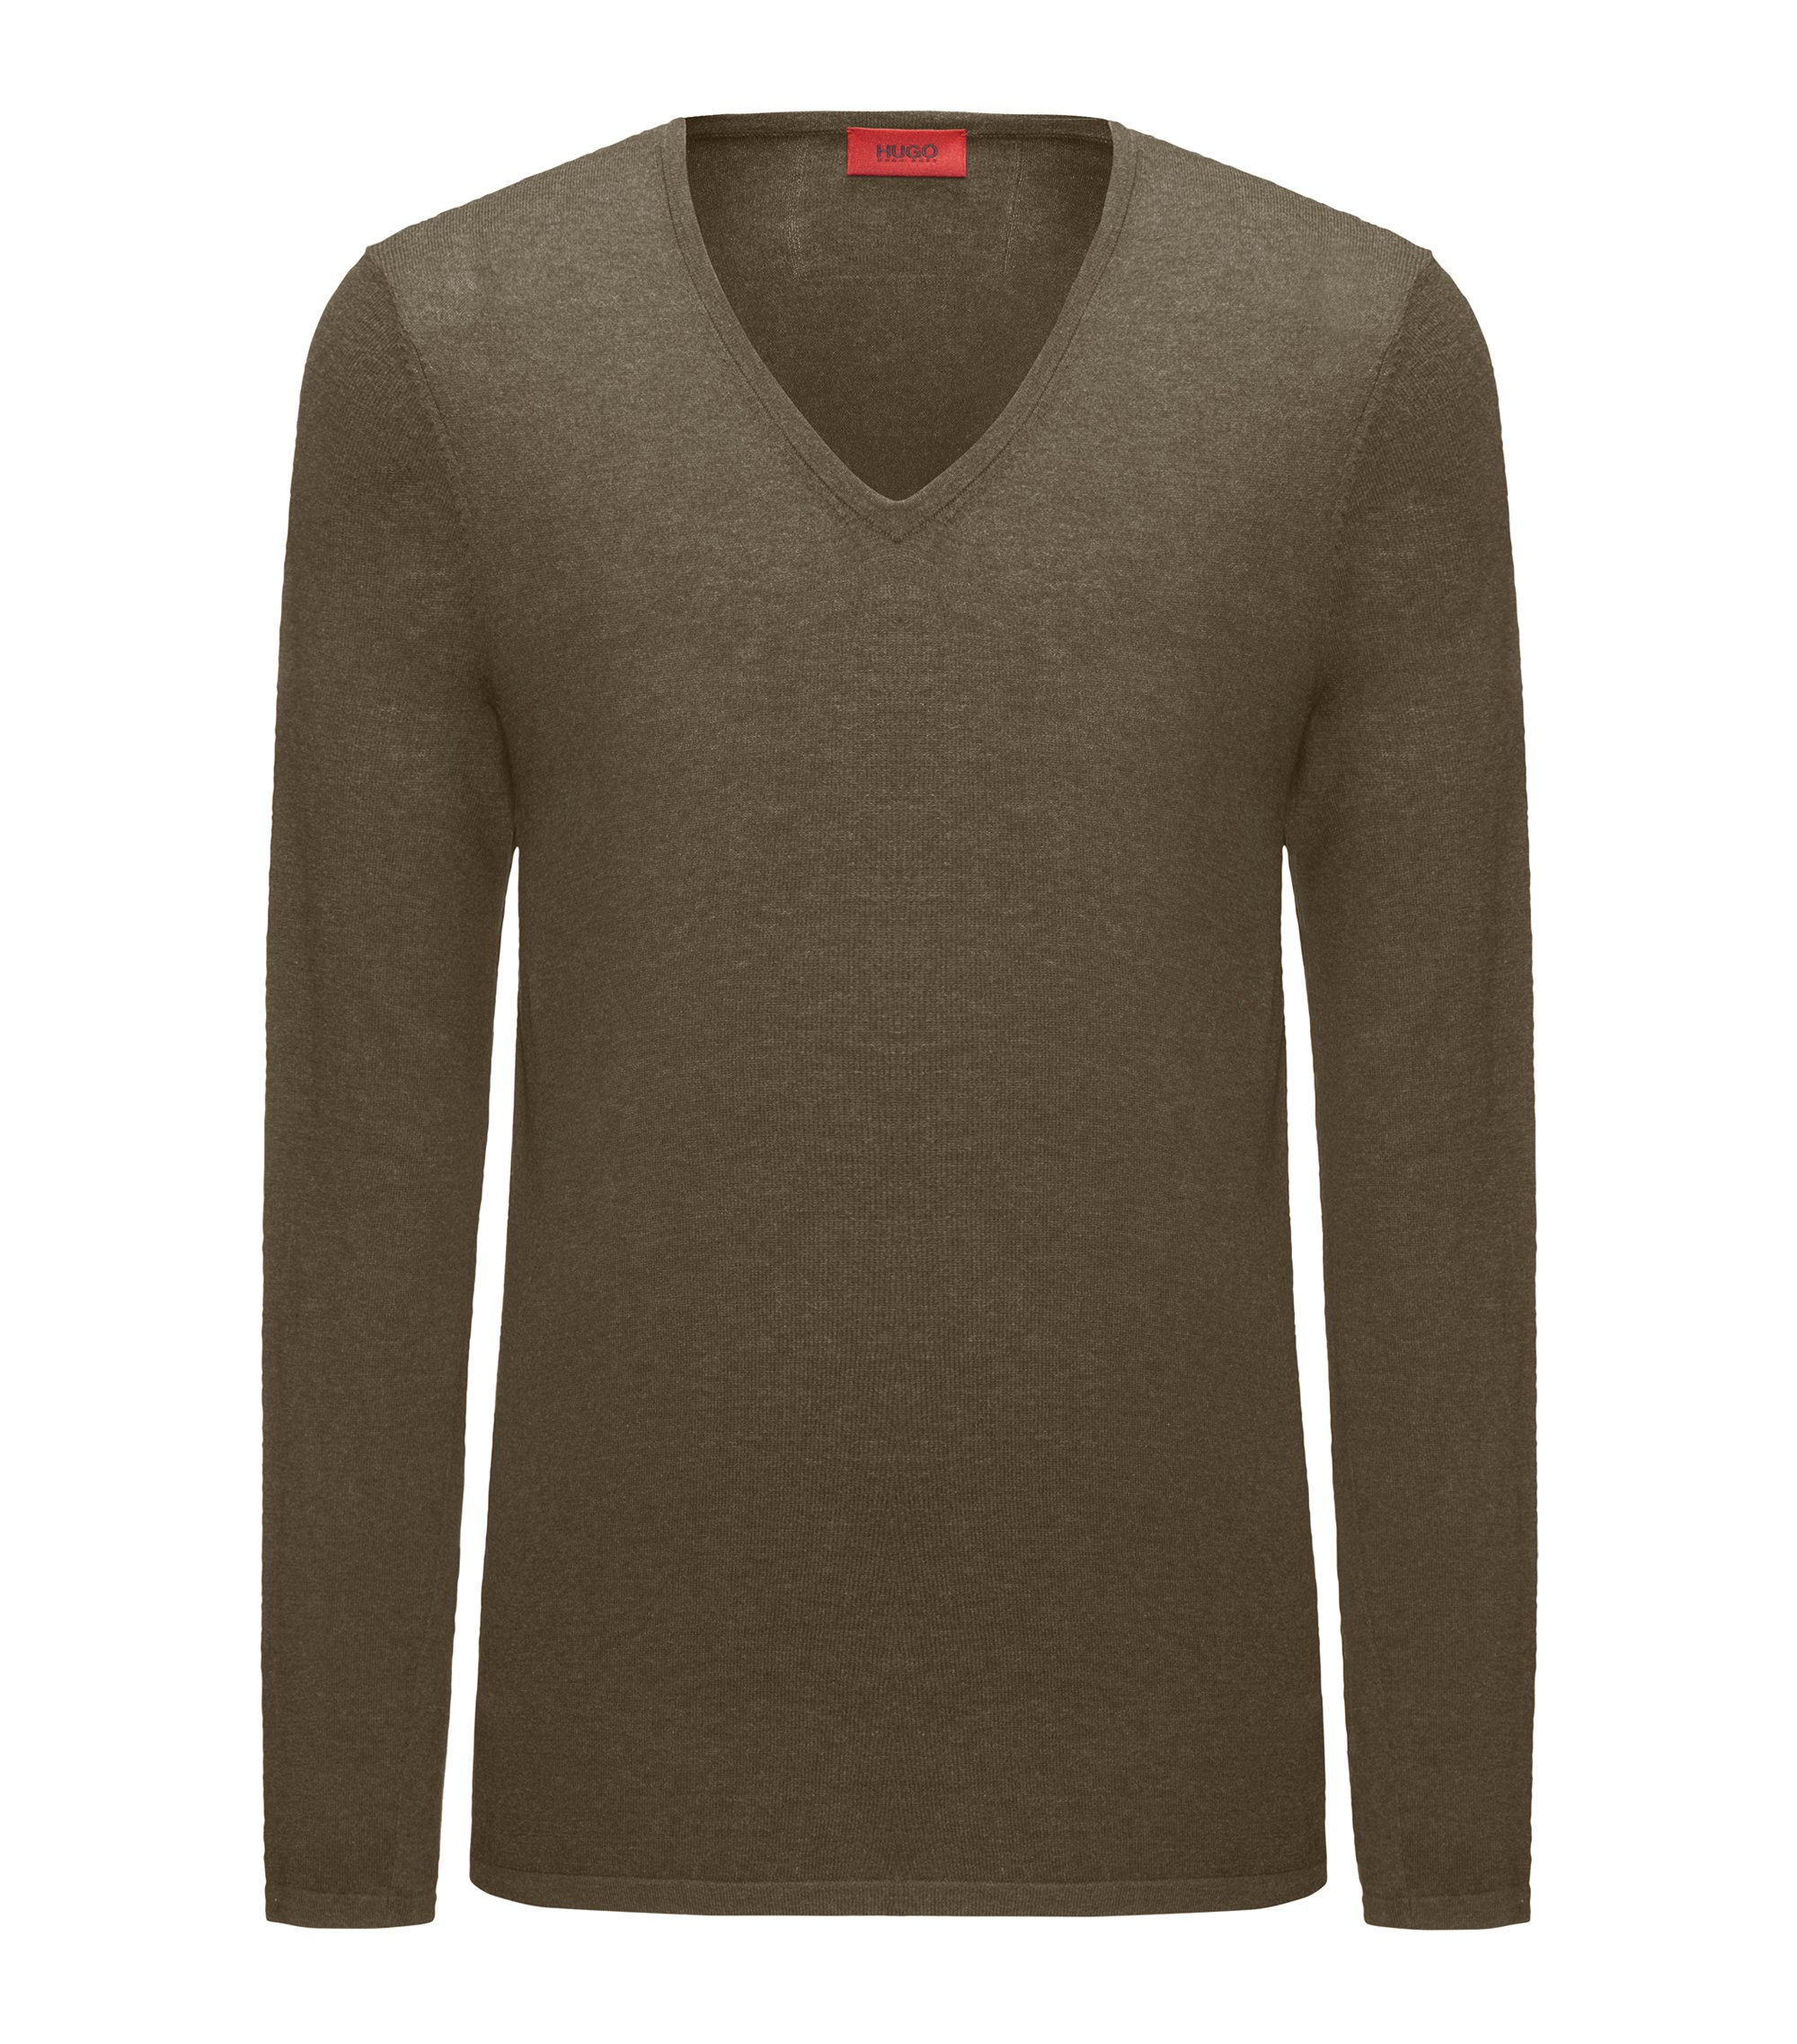 V-neck sweater in a cotton blend, Dark Green